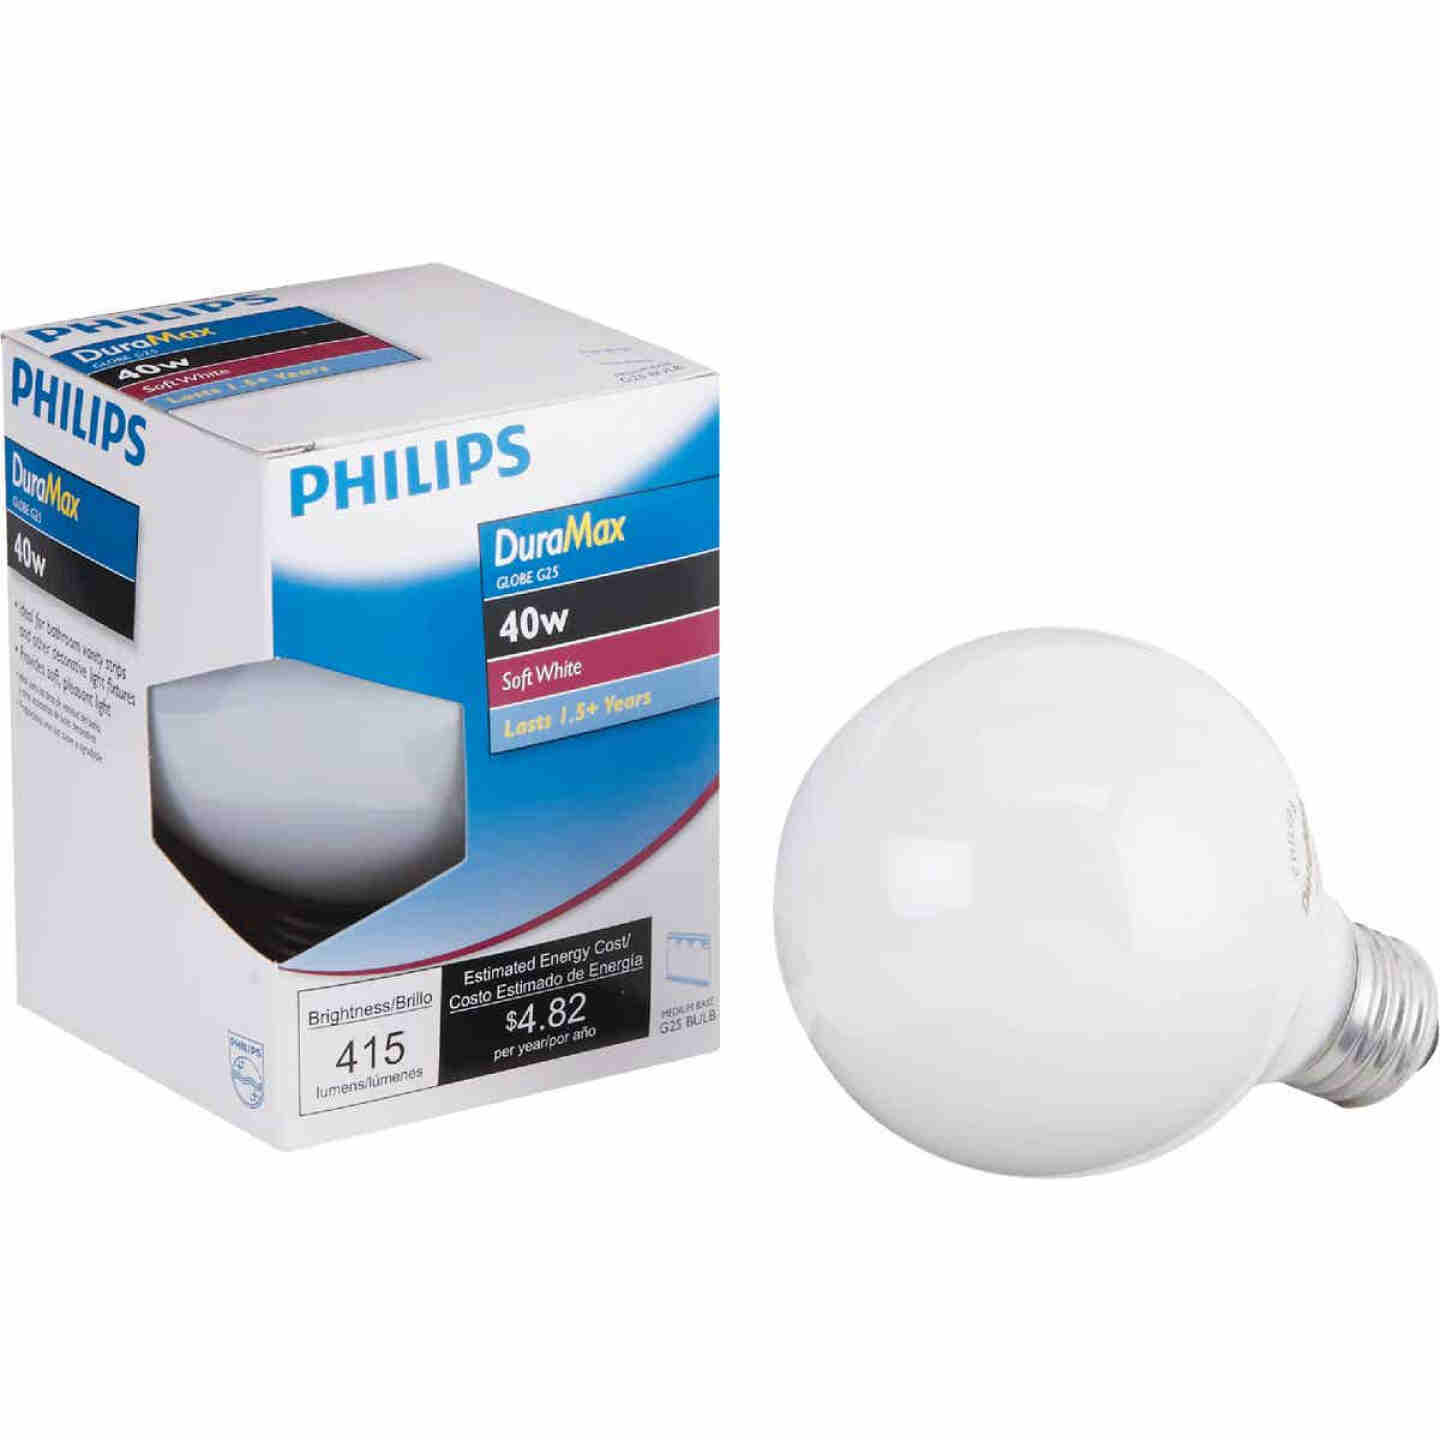 Philips DuraMax 40W Frosted Soft White Medium G25 Incandescent Globe Light Bulb Image 1